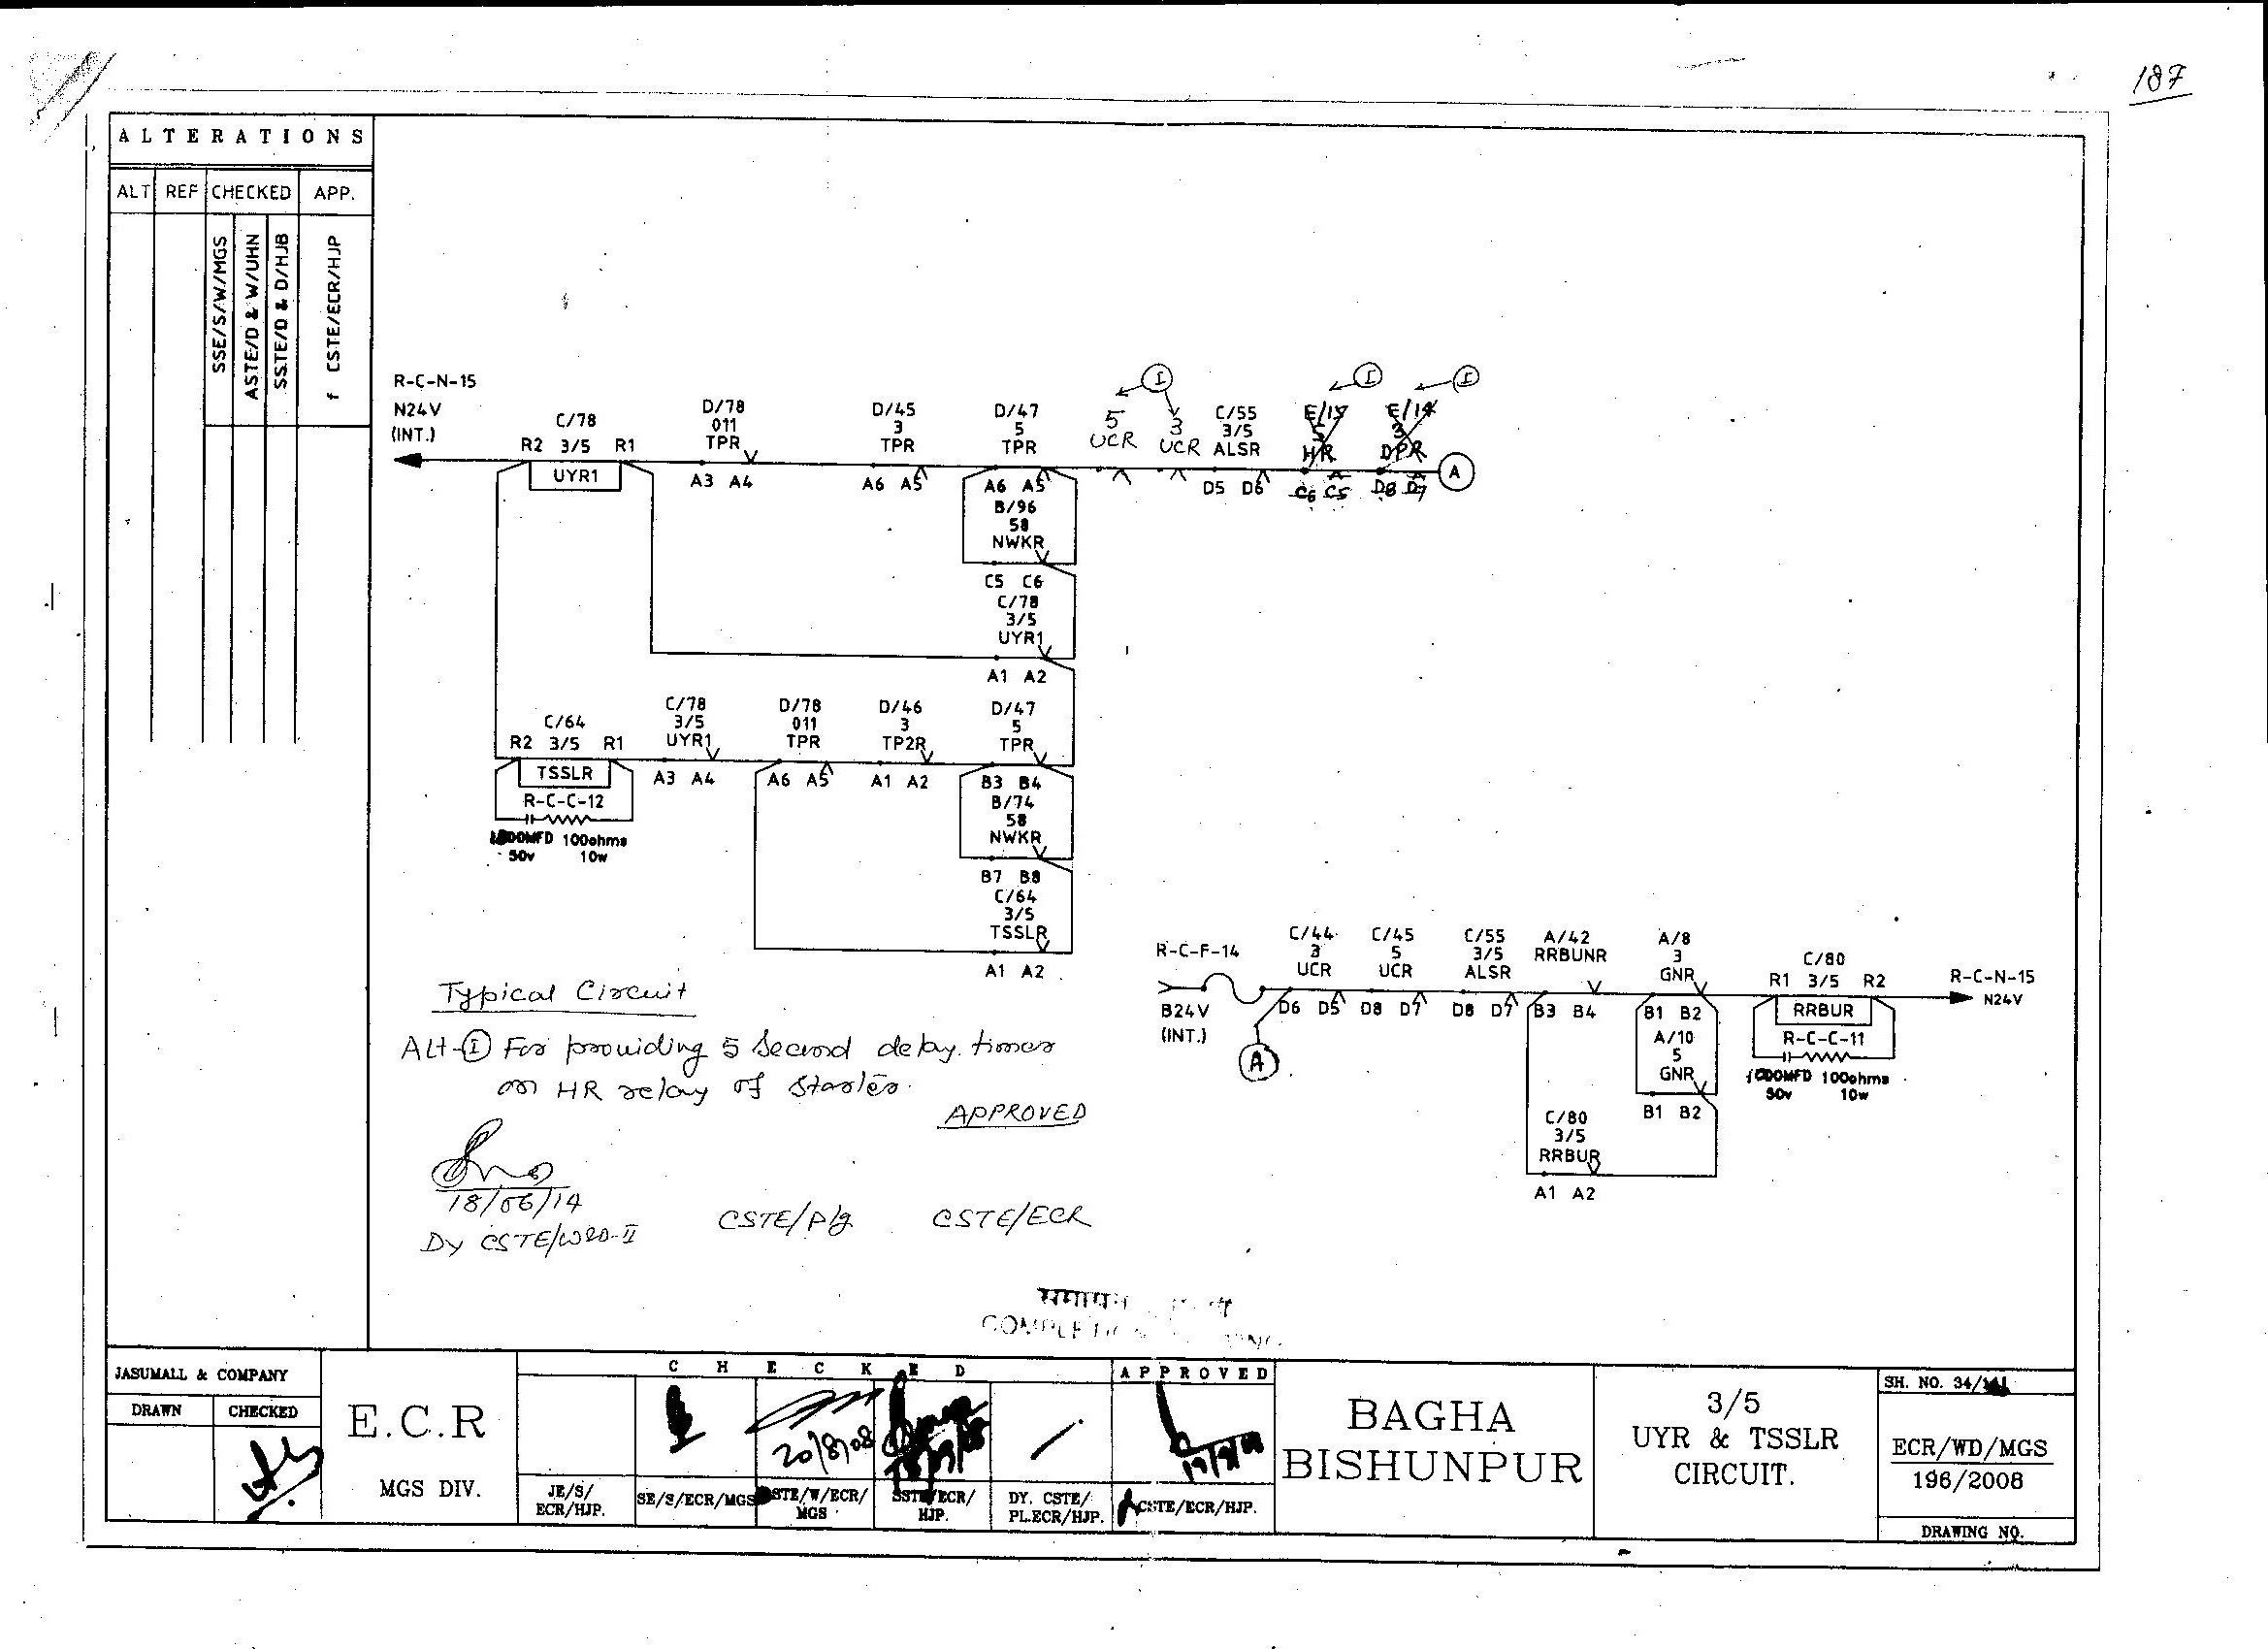 East Central Railways Indian Portal Circuit Diagram Year 6 For Providing 05 Seconds Delay Timer On Hr Relay Of Starter